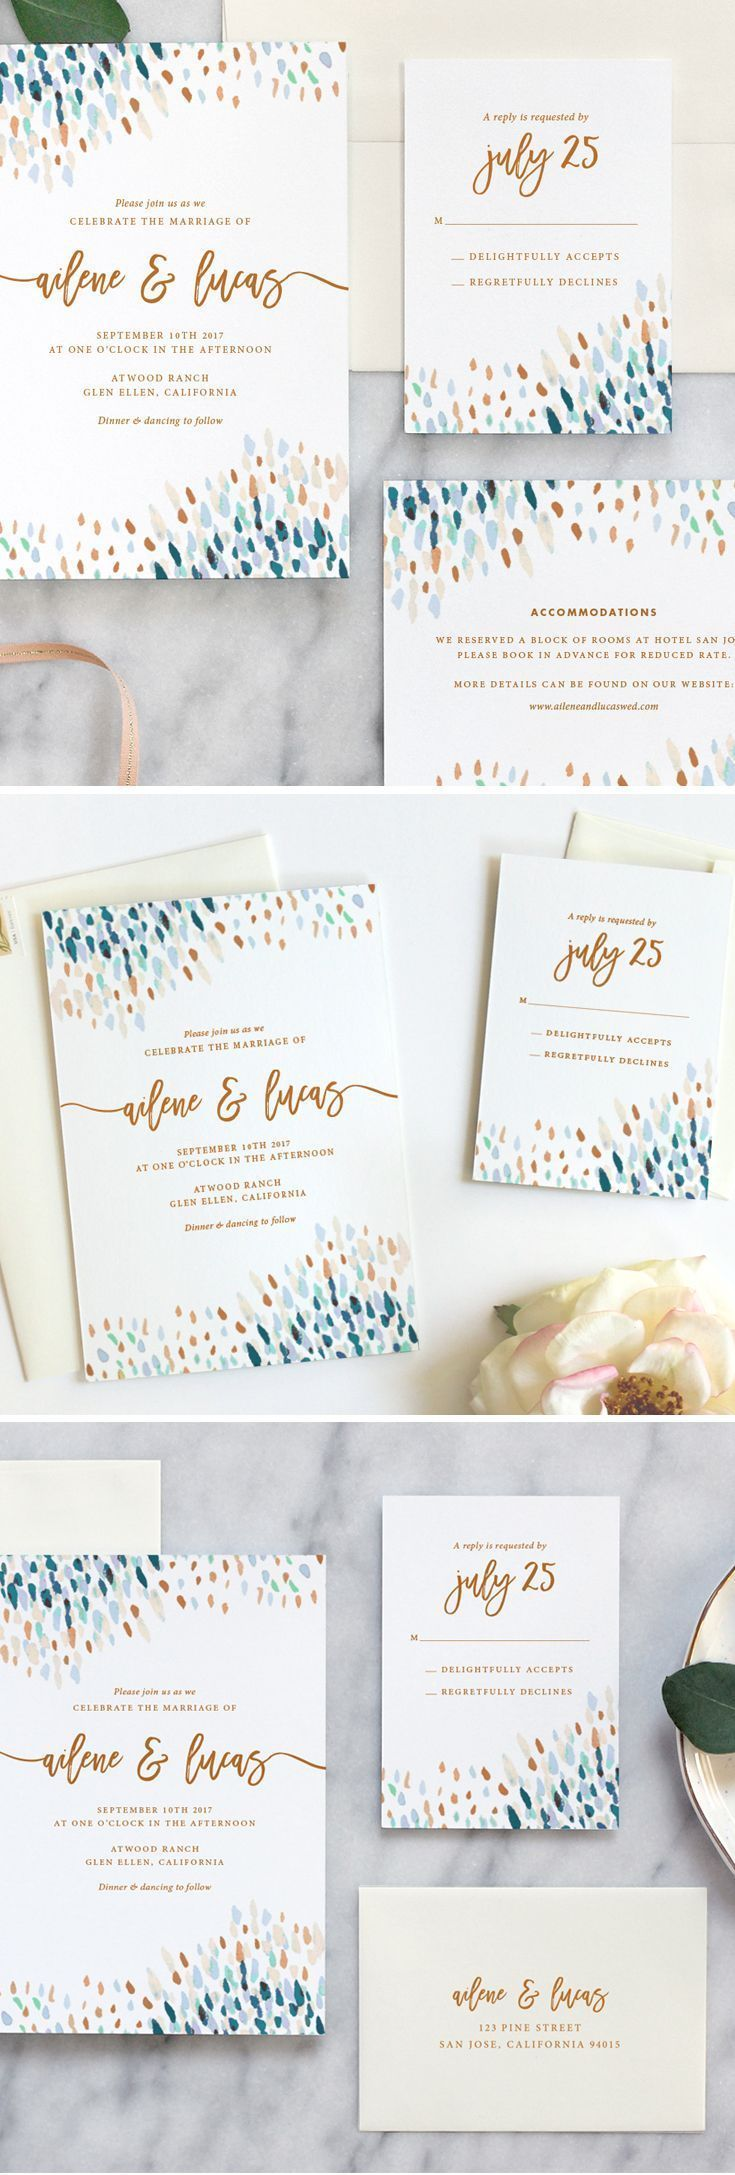 243 best Modern Wedding Invitations by Fine Day Press images on ...